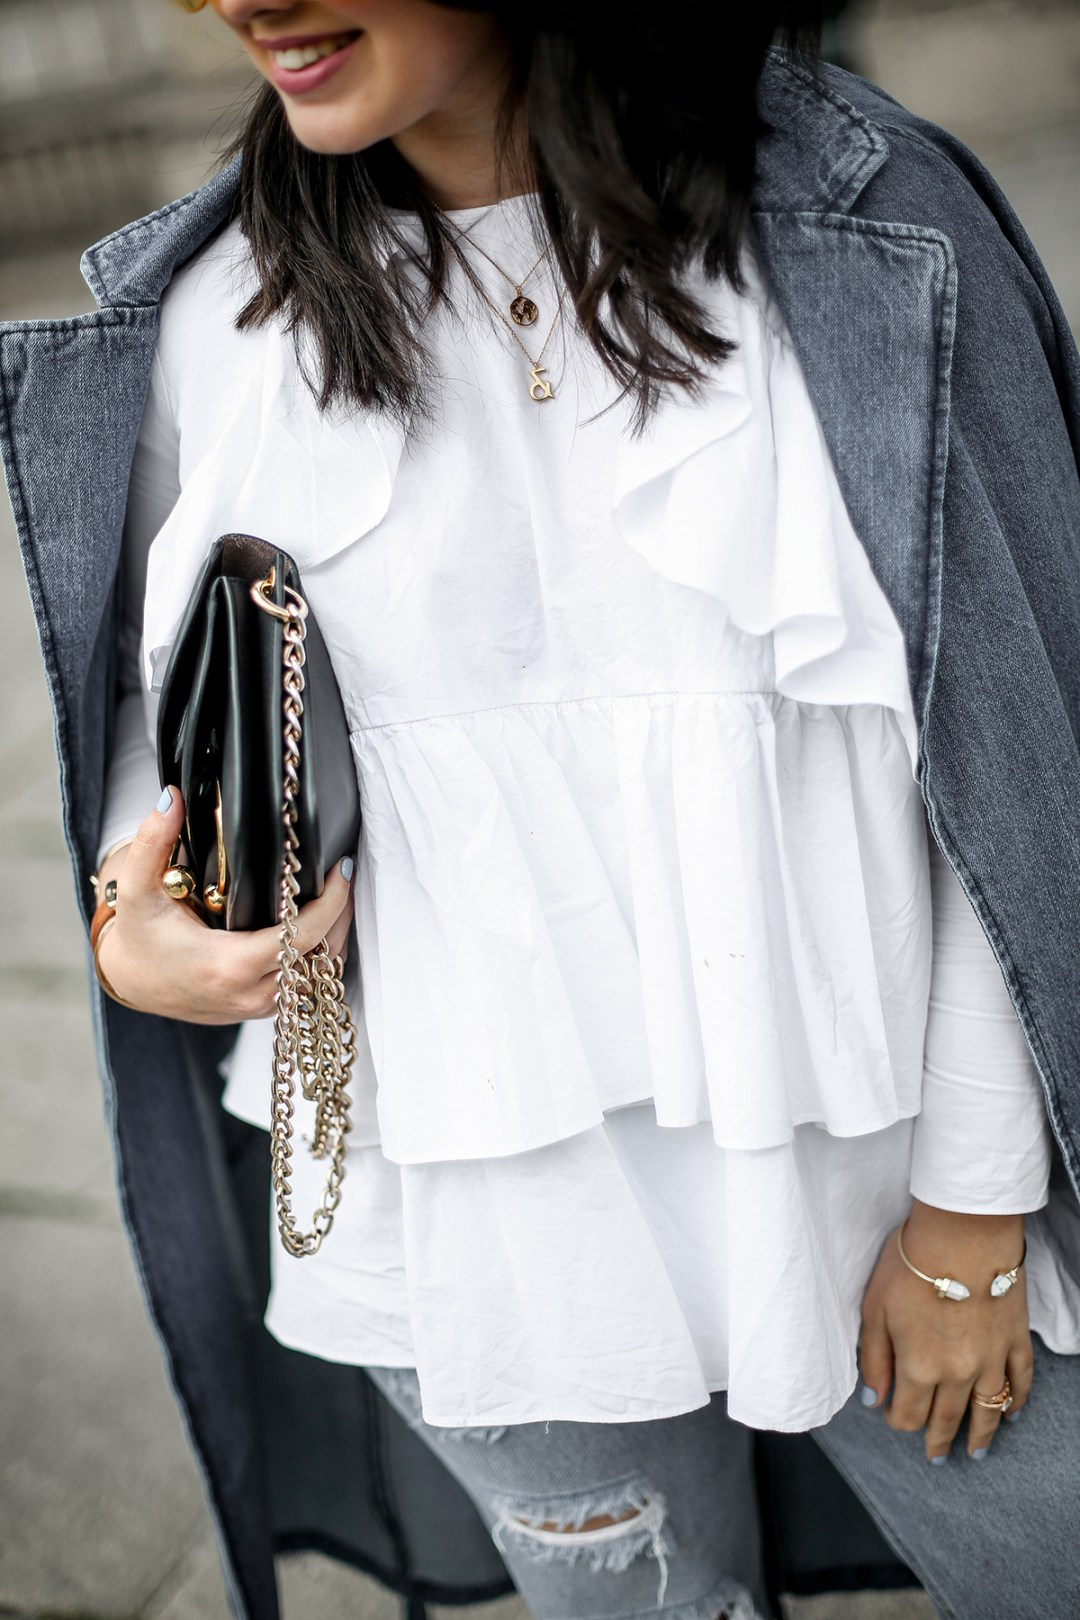 trench-denim-ripped-jeans-ruffle-blouse-zara-streetstyle7